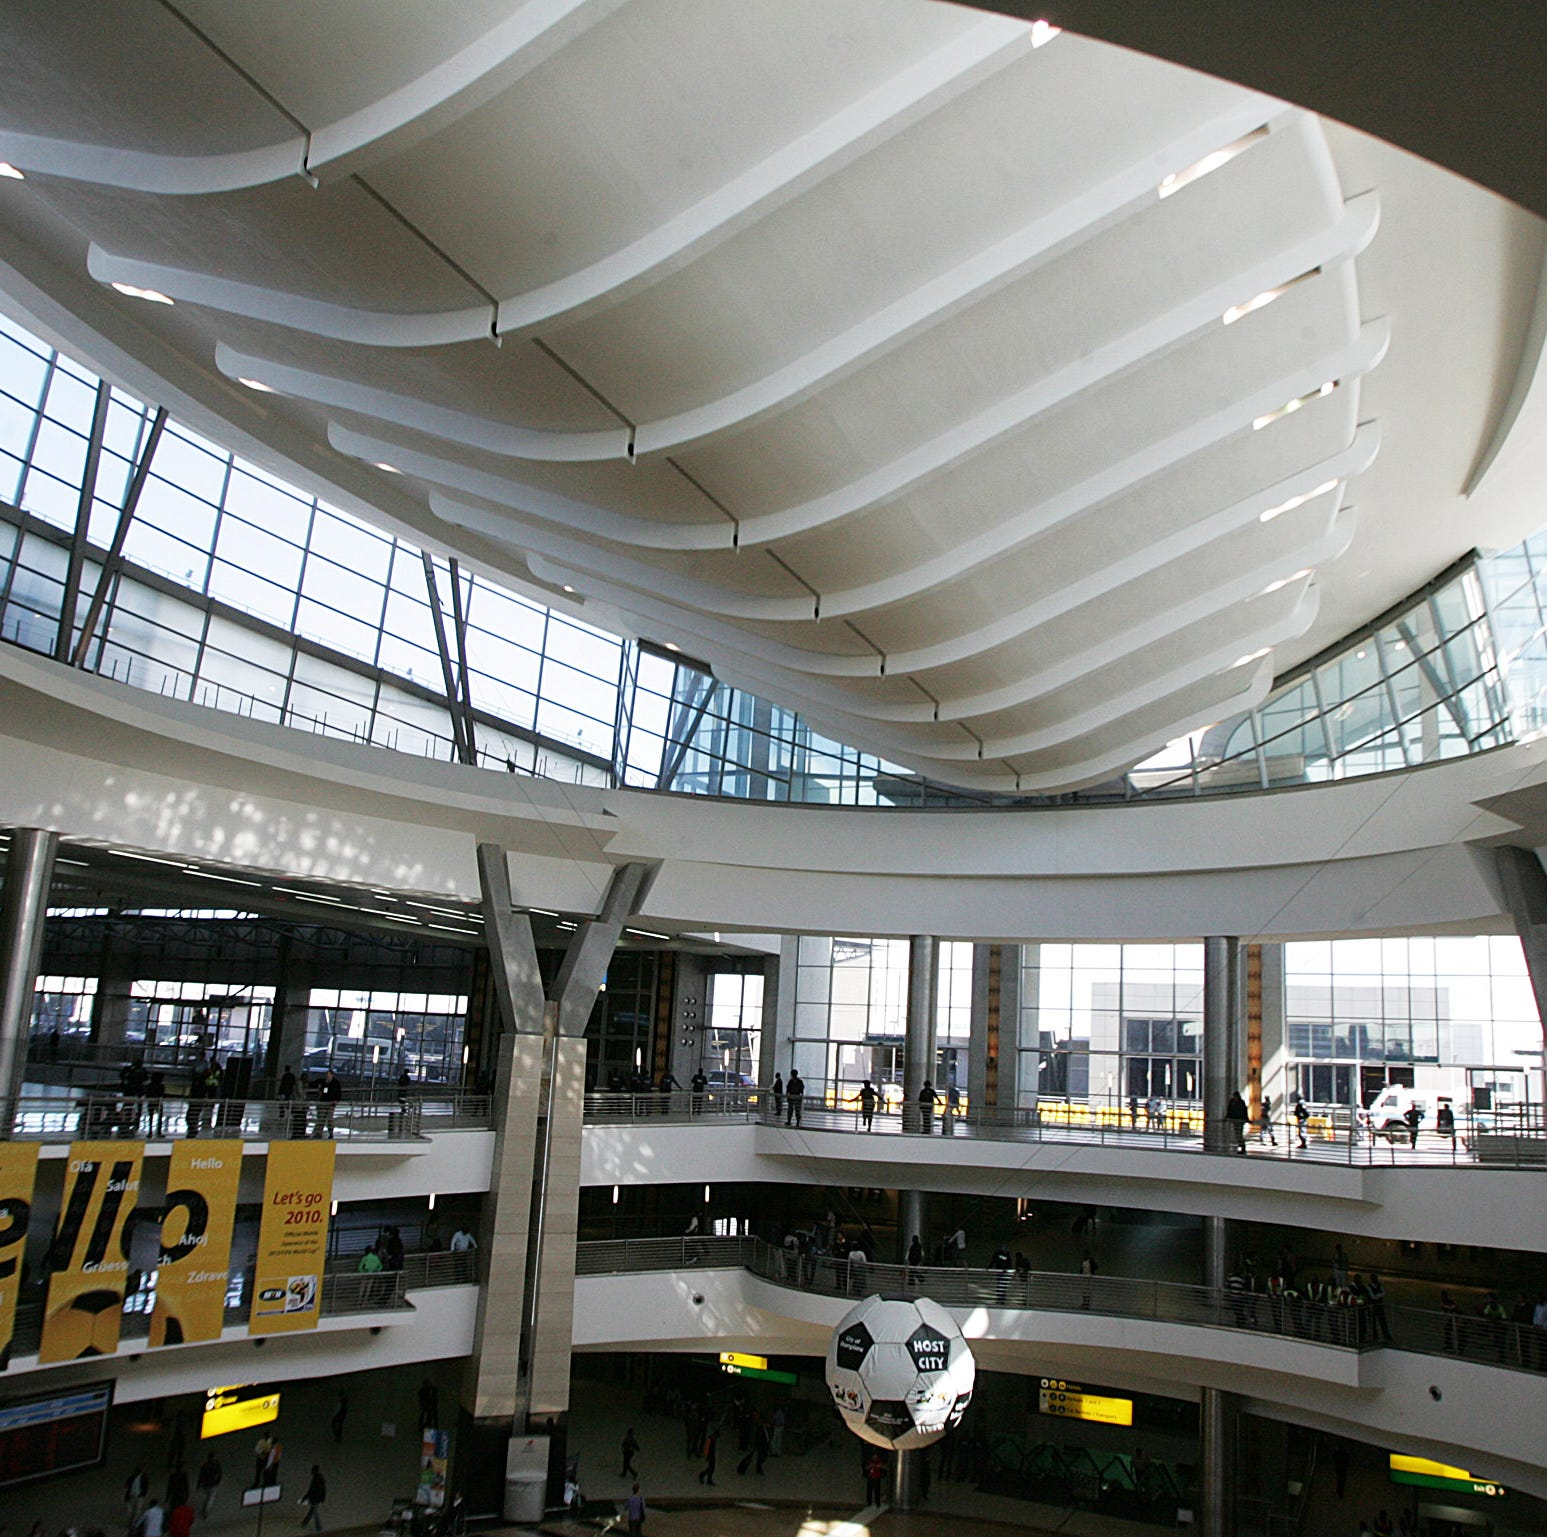 The Central Terminal building of the O.R Tambo international airport in Johannesburg after its inauguration by South African President Jacob Zuma on April 20, 2010.